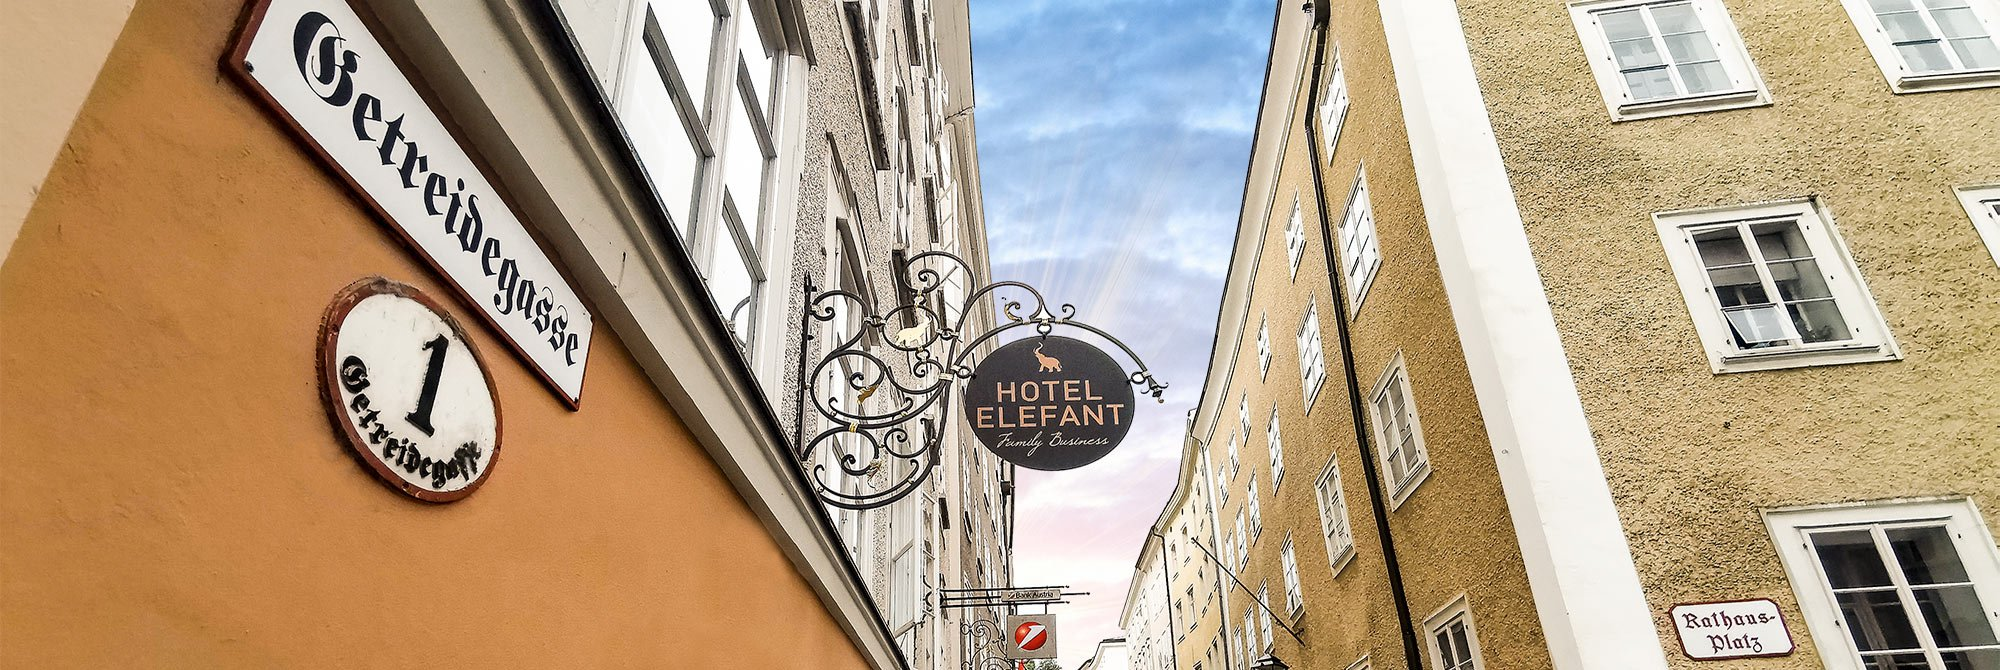 Hotel Elefant Family Business Getreidegasse 1